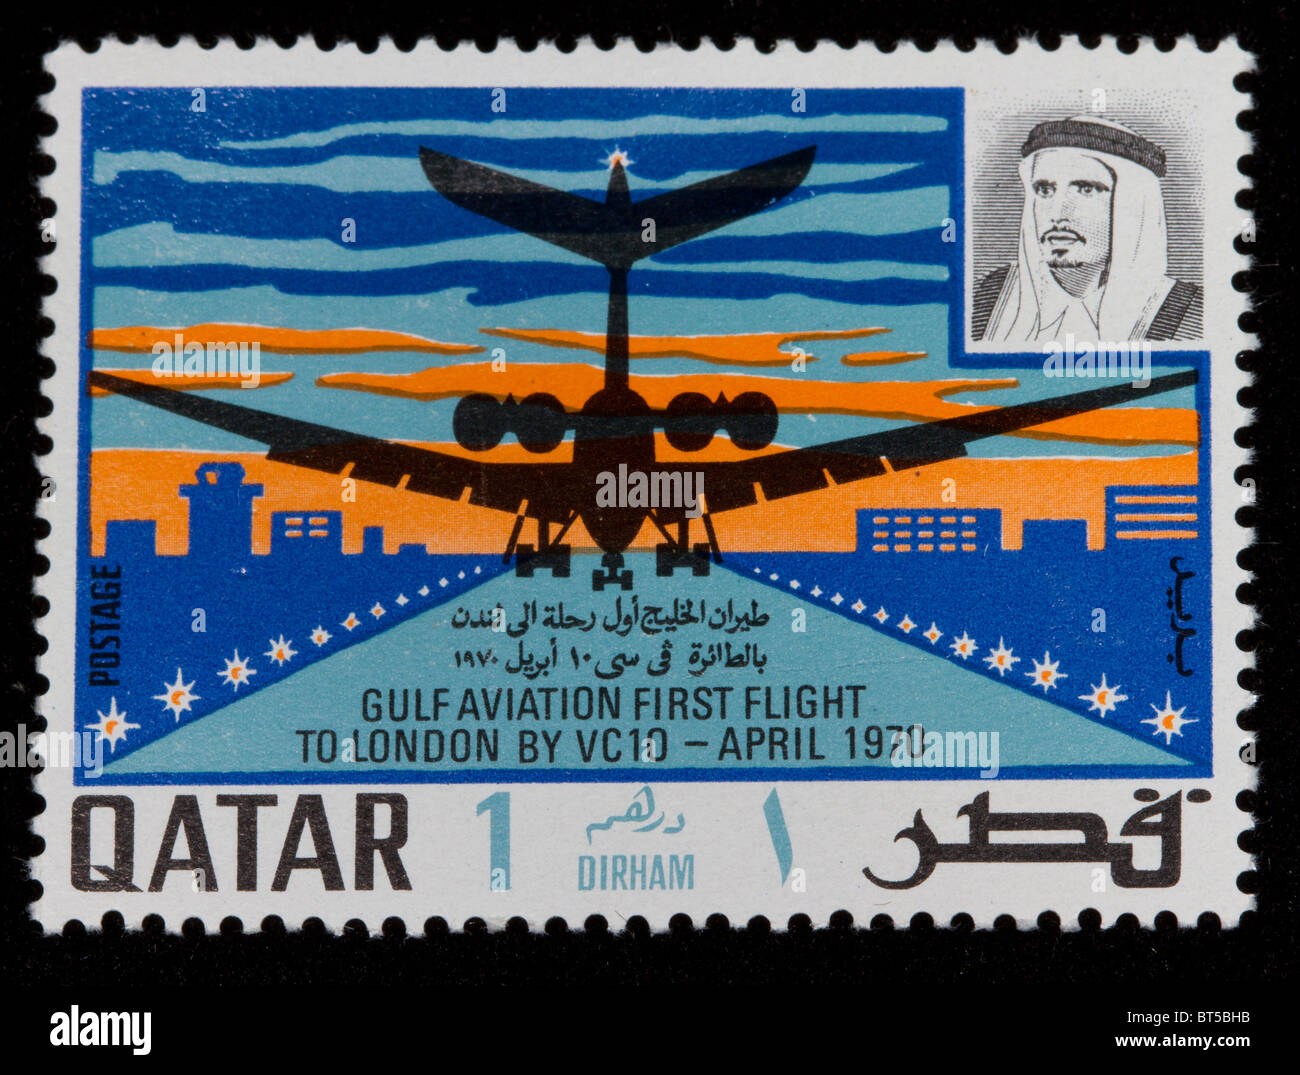 qatar postage stamp airplane - Stock Image